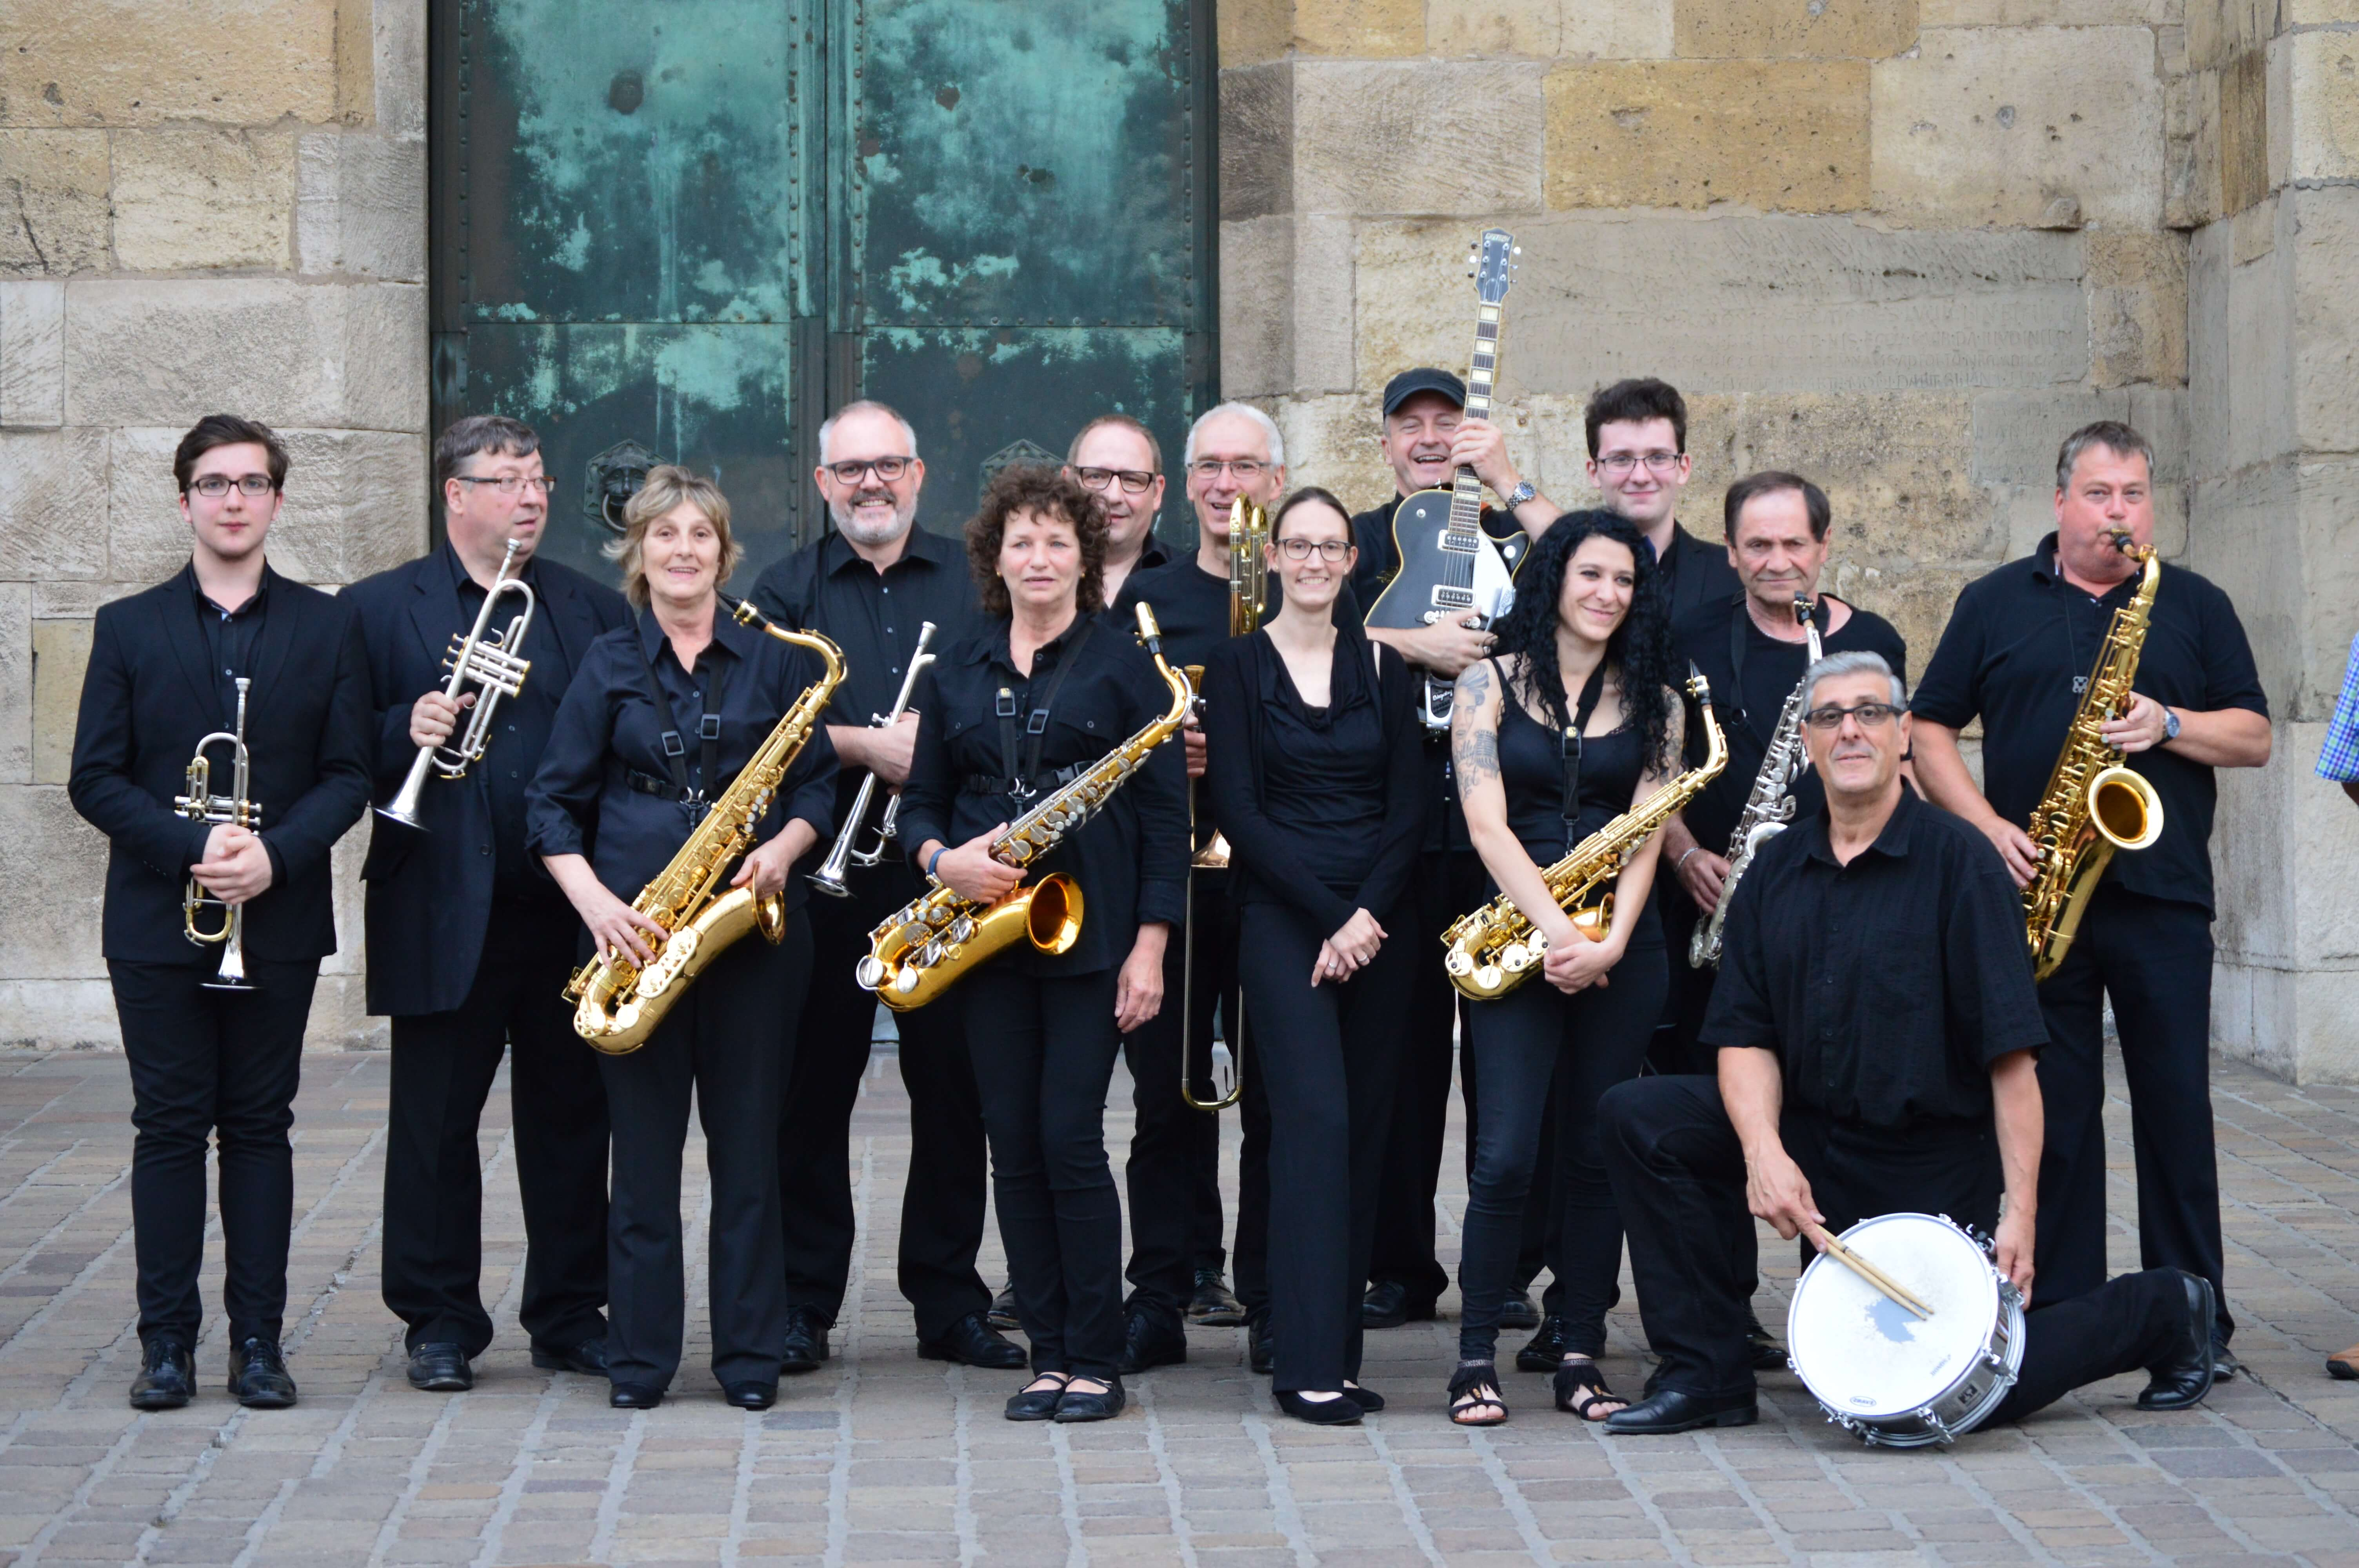 Bandfoto »Big Music Band 2001 Esch-Alzette«